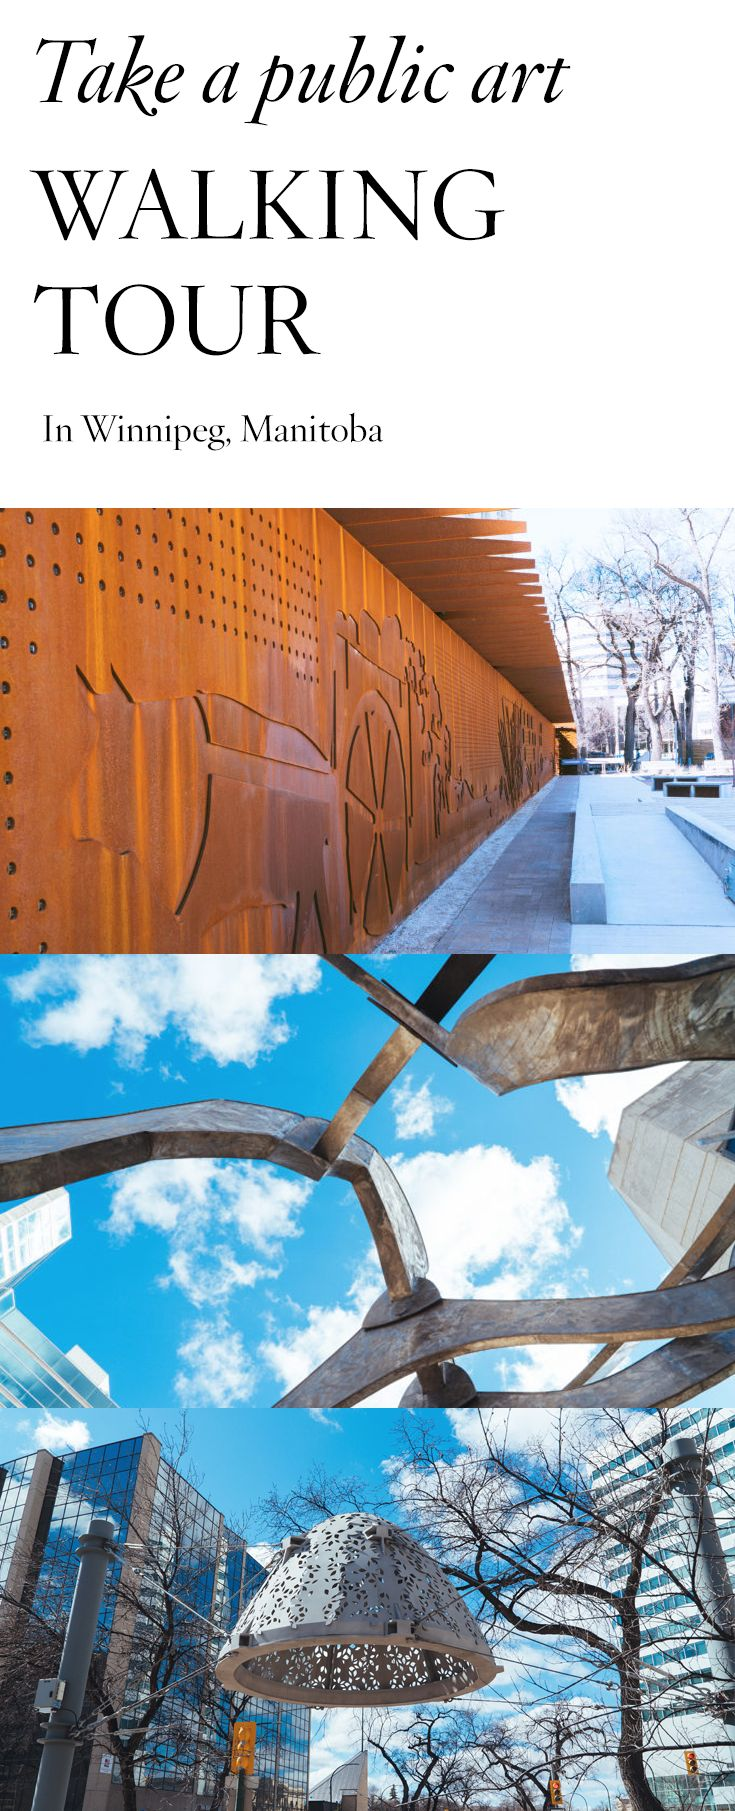 Take a walking tour of Winnipeg's public art.